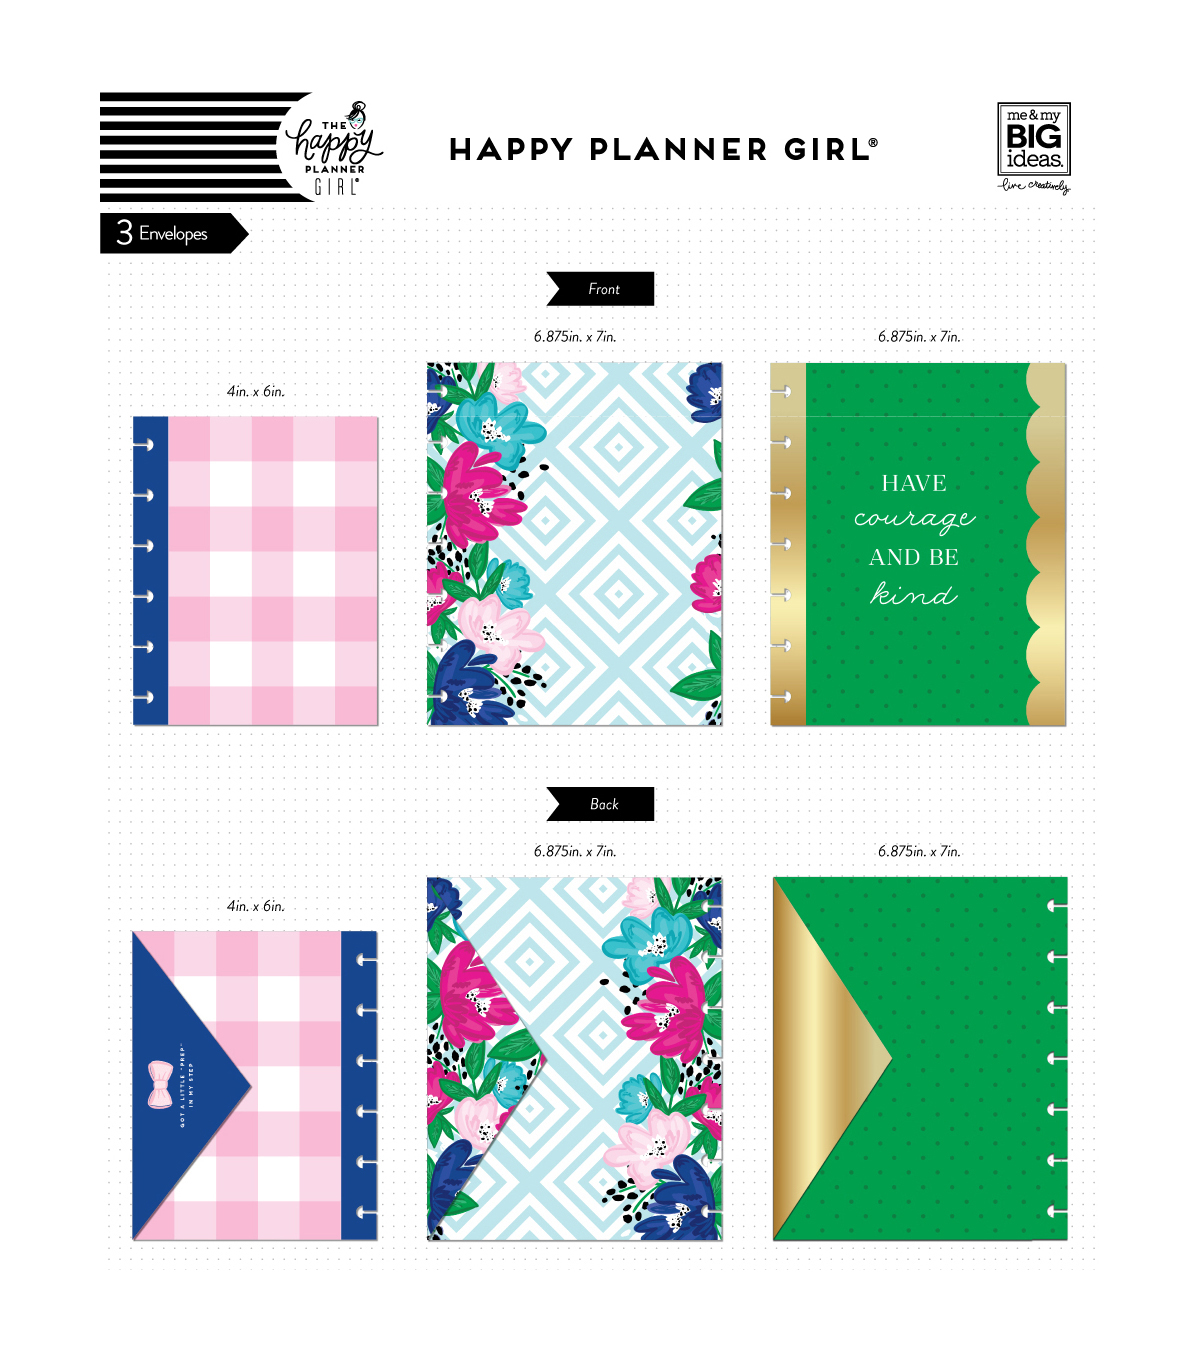 The Happy Planner Girl Envelopes - Socialite